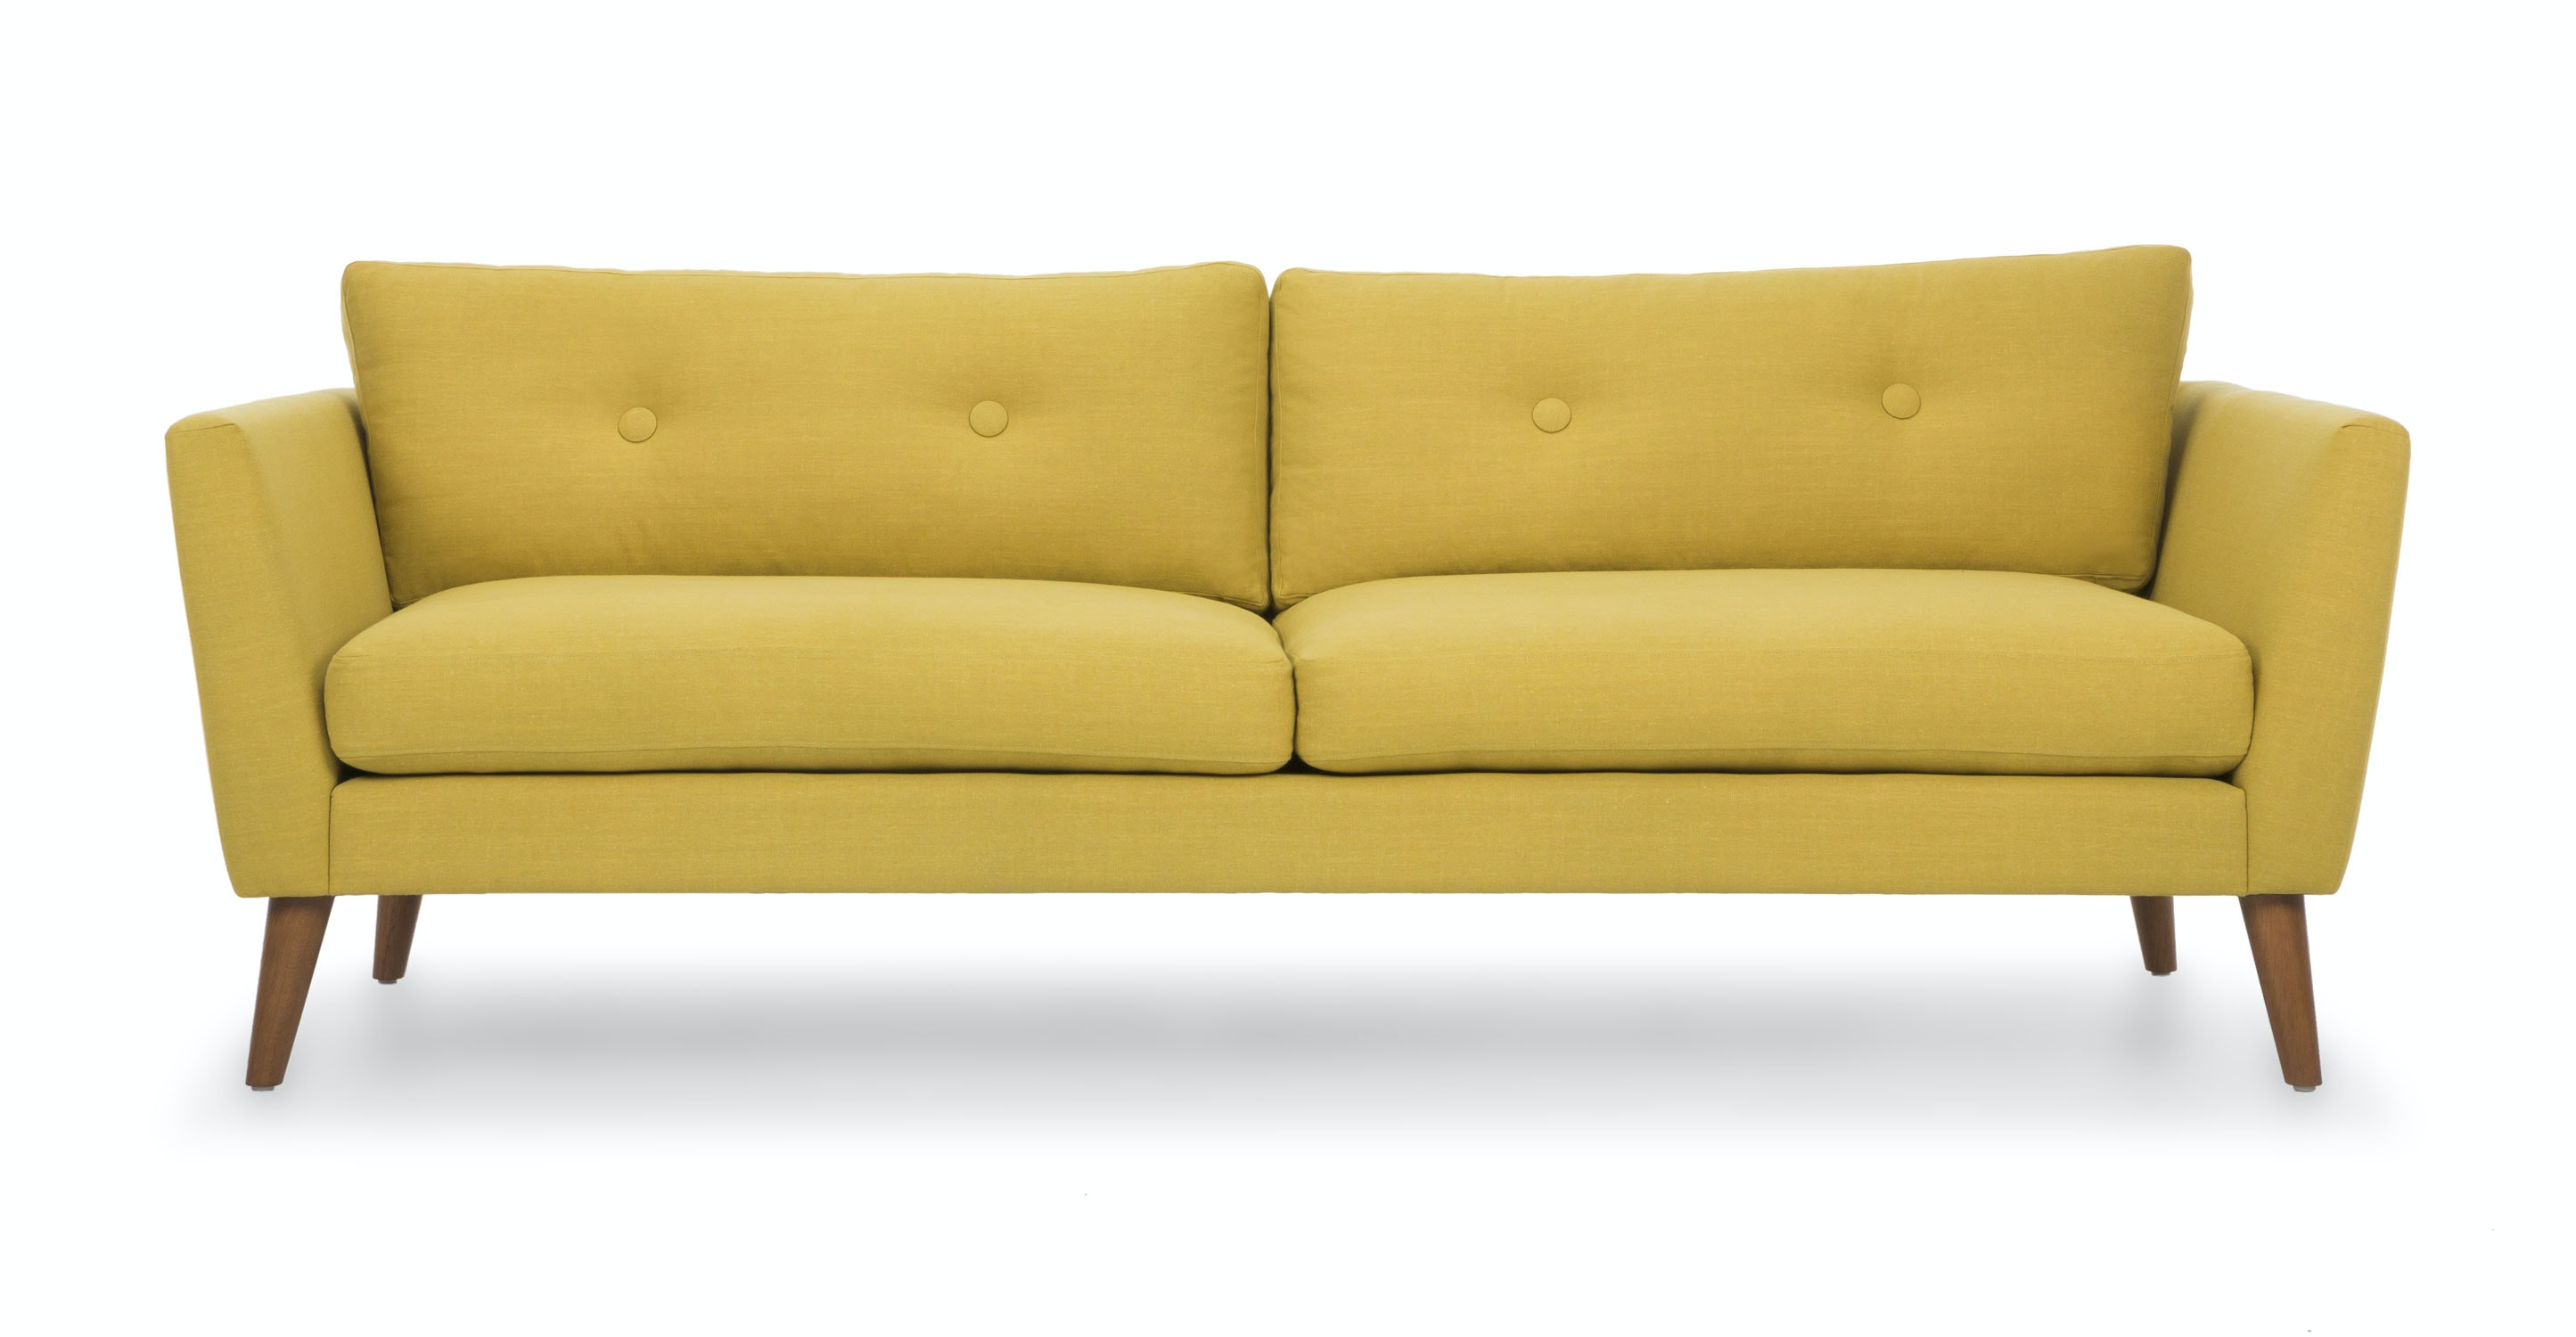 Emil Chartreuse Yellow Sofa Sofas Article Modern Mid Century And Scandinavian Furniture